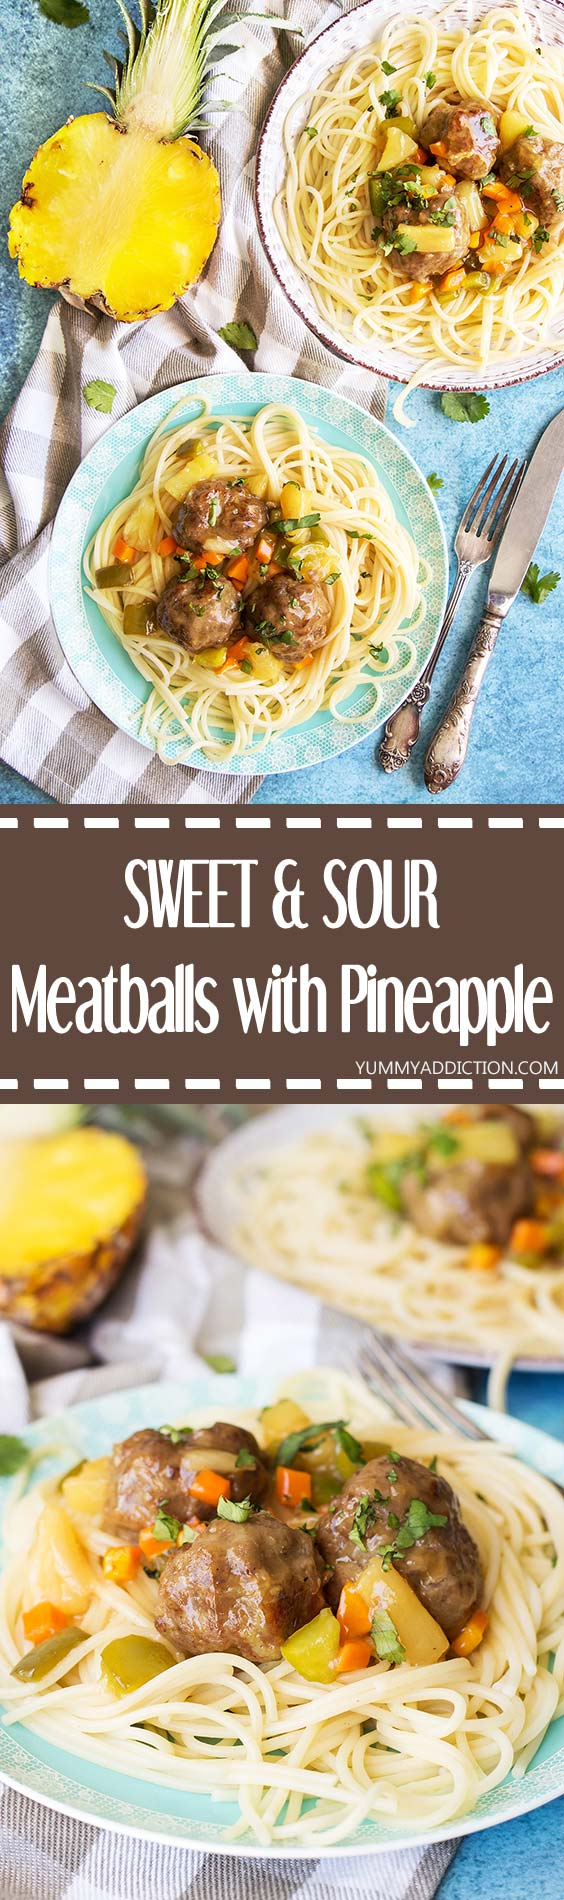 These Sweet and Sour Meatballs with Pineapple flavored and carrot and bell pepper packed sauce, make a great full meal or an appetizer. Comforting, tender, delicious! | yummyaddiction.com